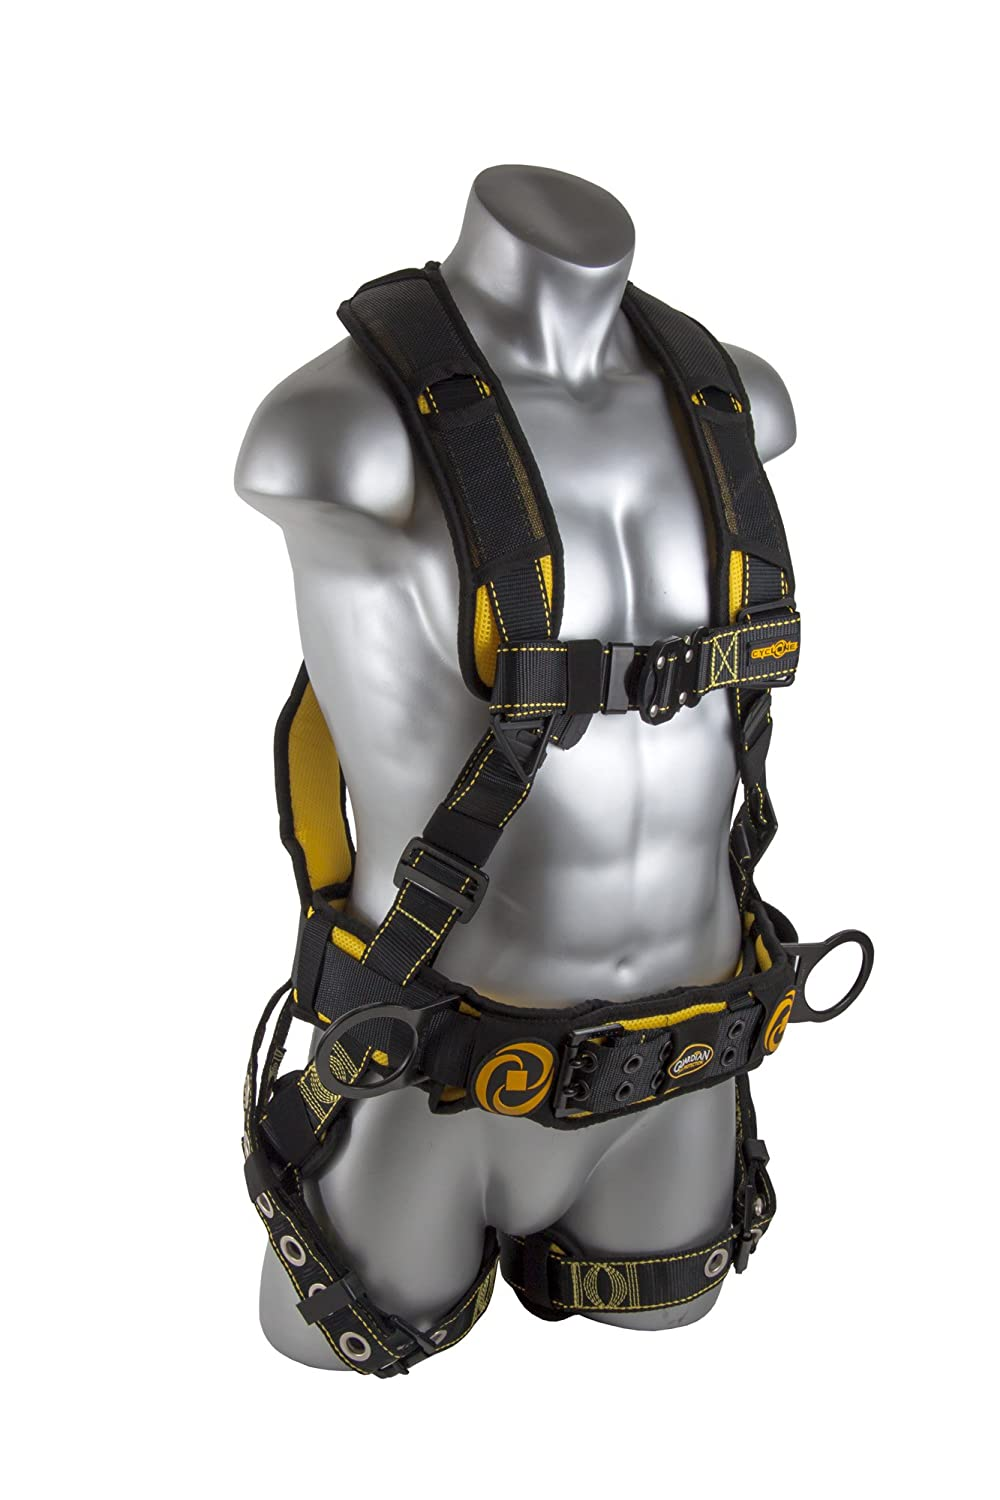 Guardian Fall Protection 21034 Cyclone Construction Harness with QC  Chest/QC Leg/TB Waist Belt/Side D-Rings, Black/Yellow - Fall Arrest Safety  Harnesses ...